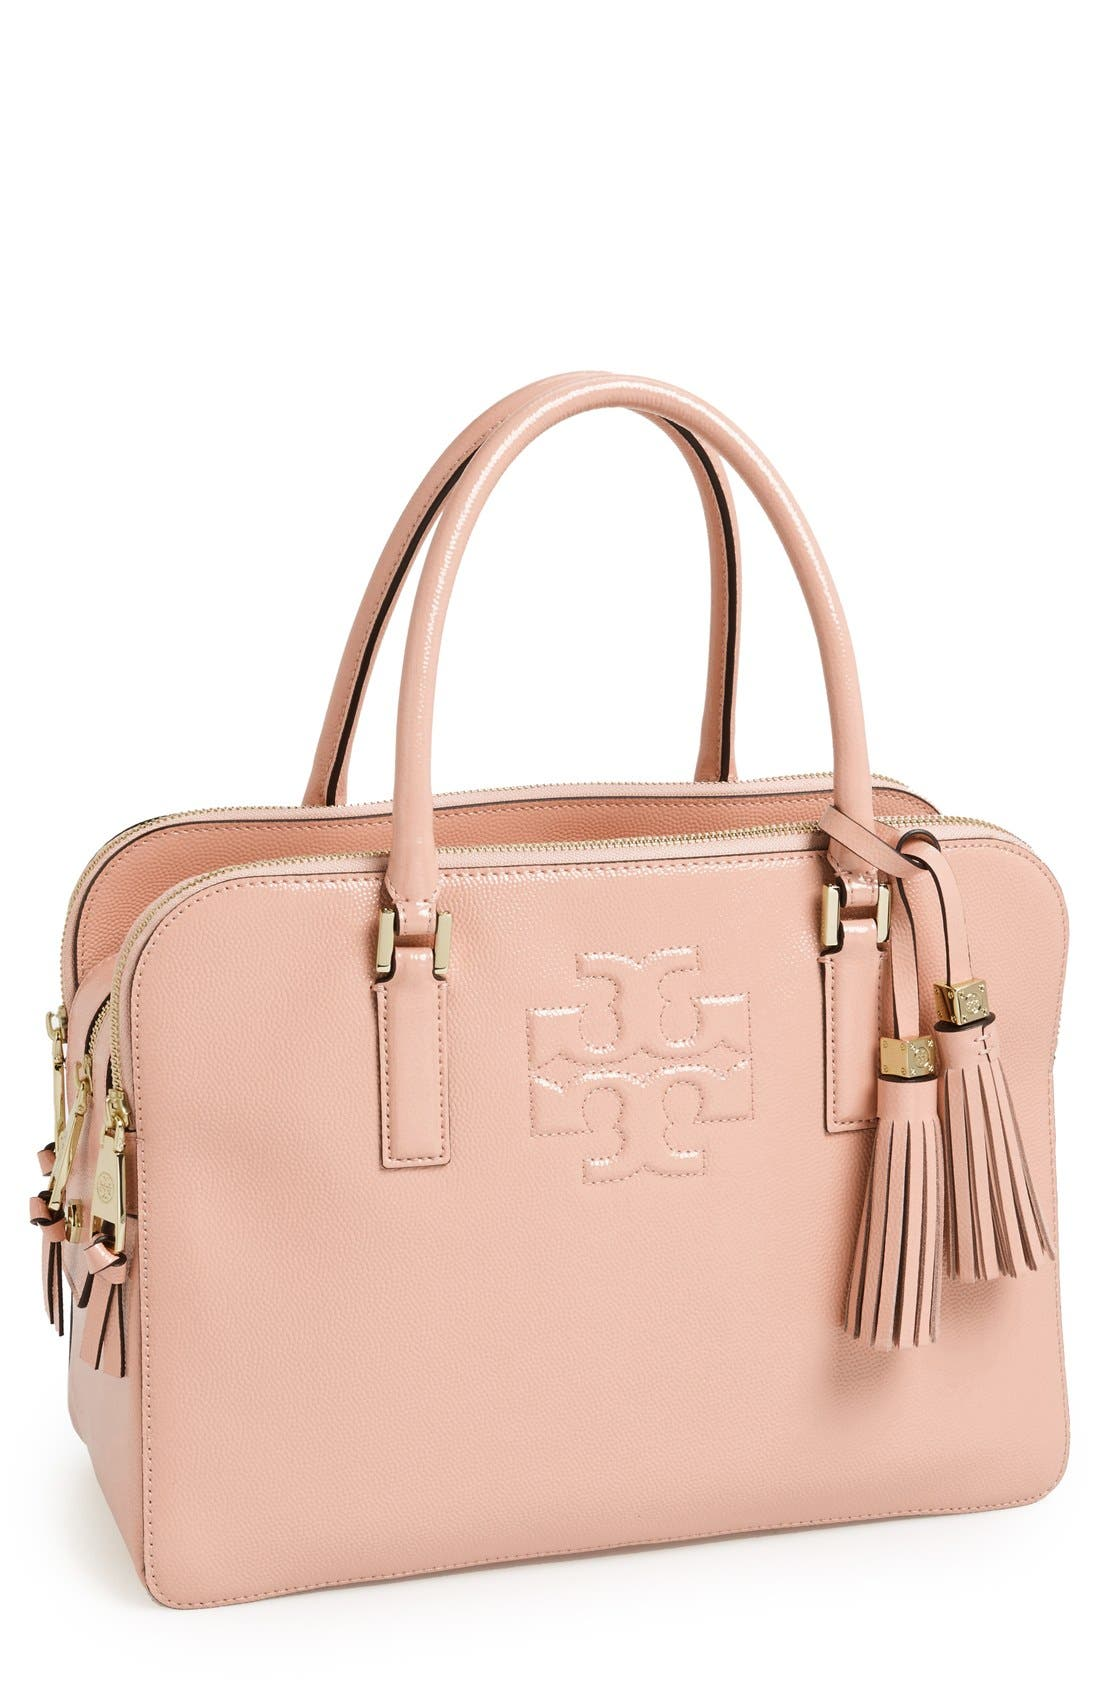 Main Image - Tory Burch 'Thea' Patent Leather Triple Zip Satchel